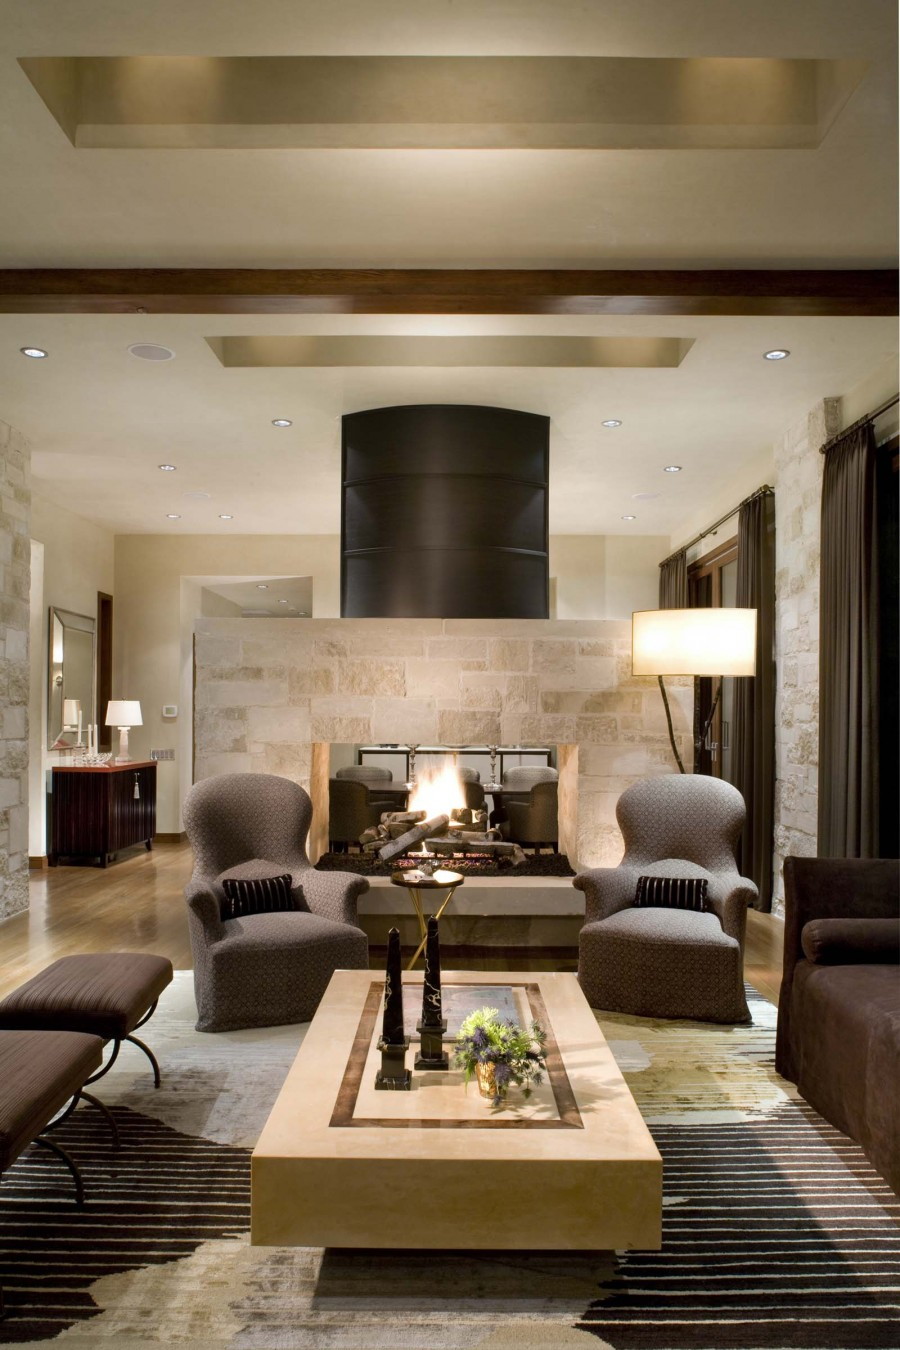 16 fabulous earth tones living room designs decoholic - Modern living room design images ...